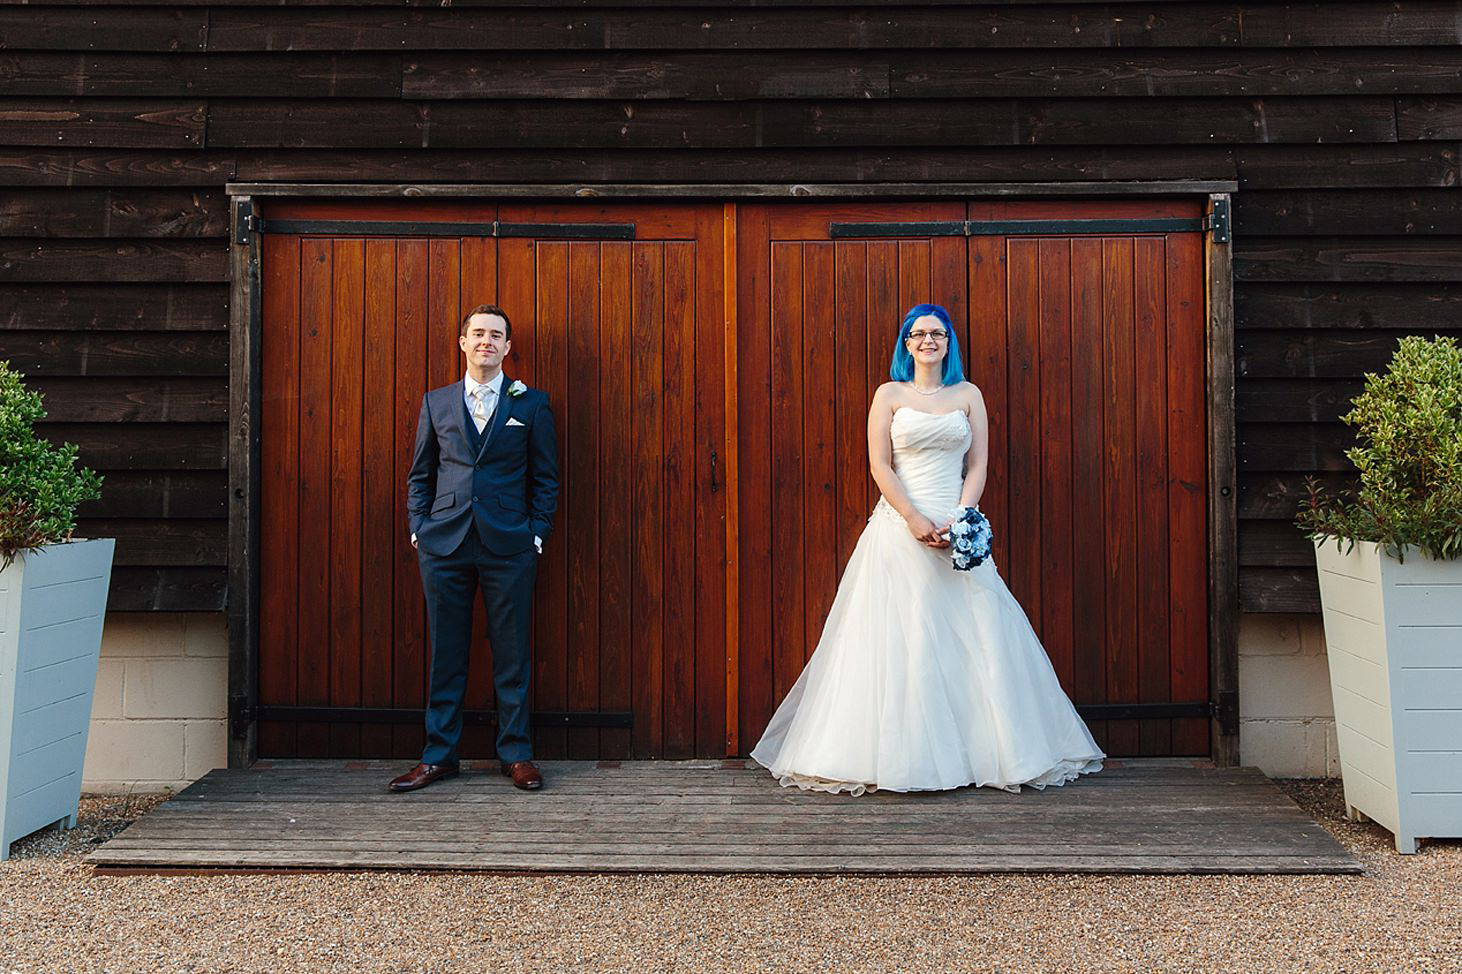 gate street barn wedding photography bride and groom infant of barn doors